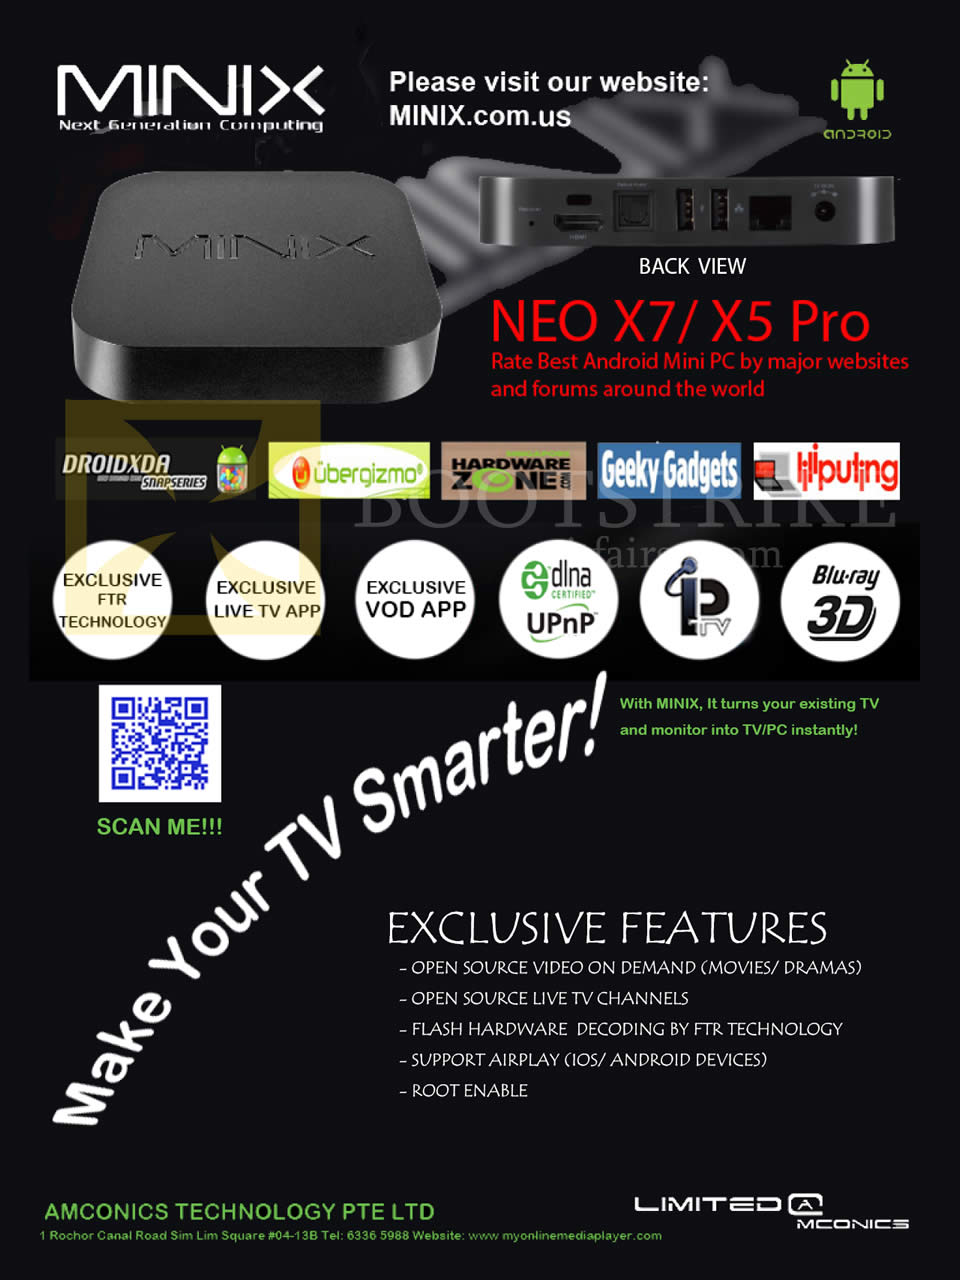 COMEX 2013 price list image brochure of Amconics Media Players Minix Neo X7, Neo X5 Pro, Features